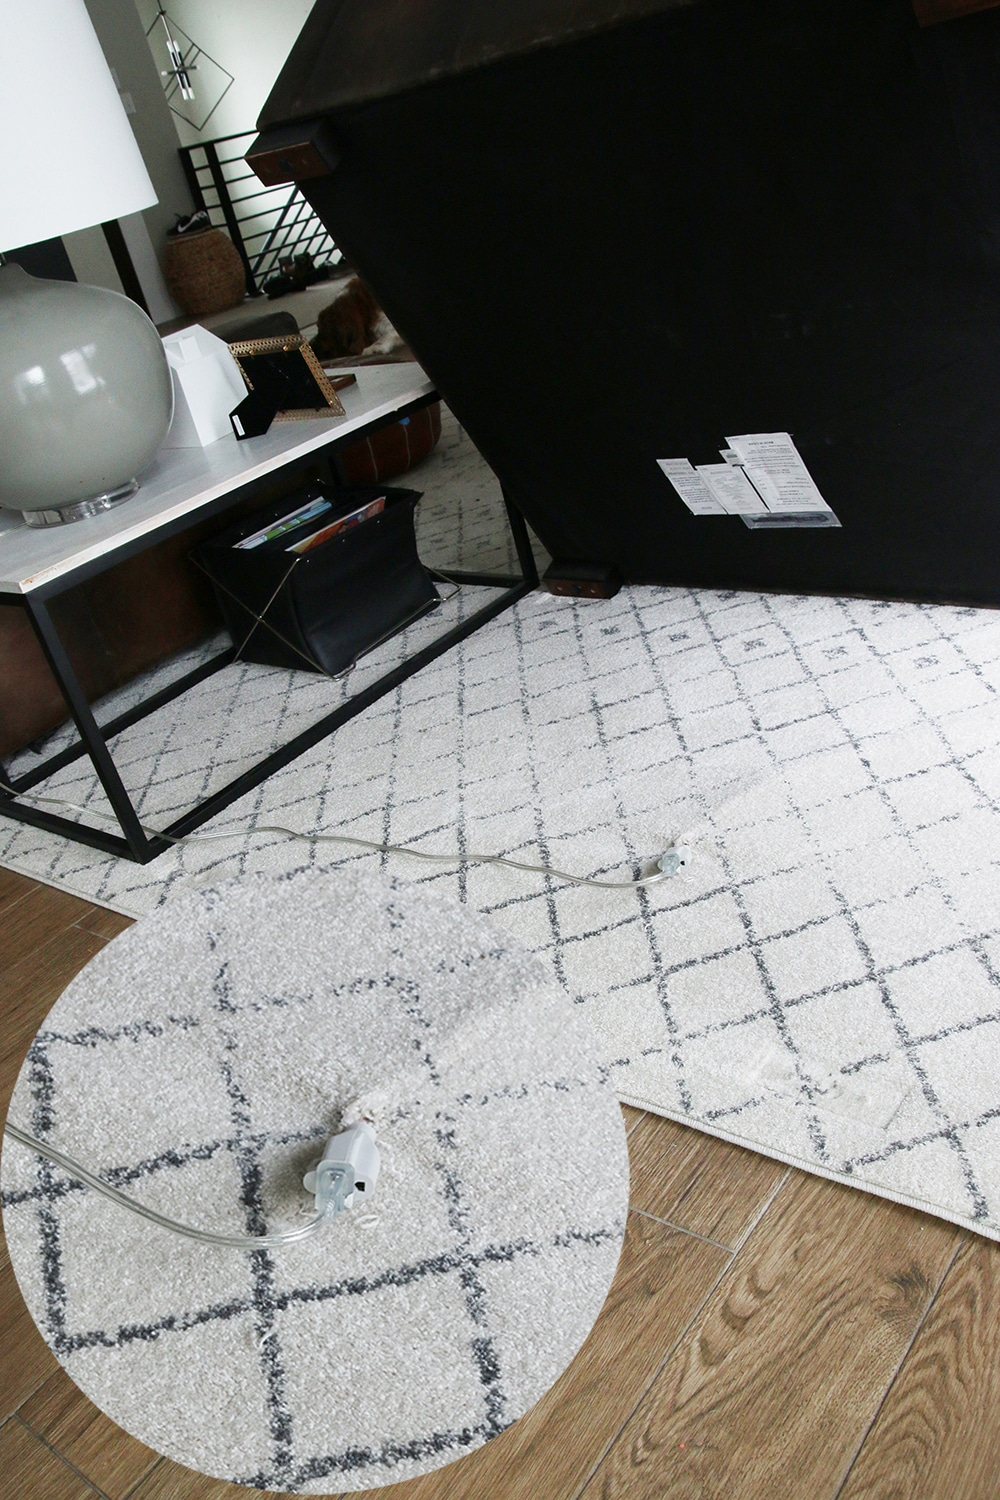 We Purchased One Of These Flat Extension Cords And Taped It Along The Edge  Of The Rug So Itu0027s Undetectable Walking Over It. Youu0027re Definitely Going To  Want ...